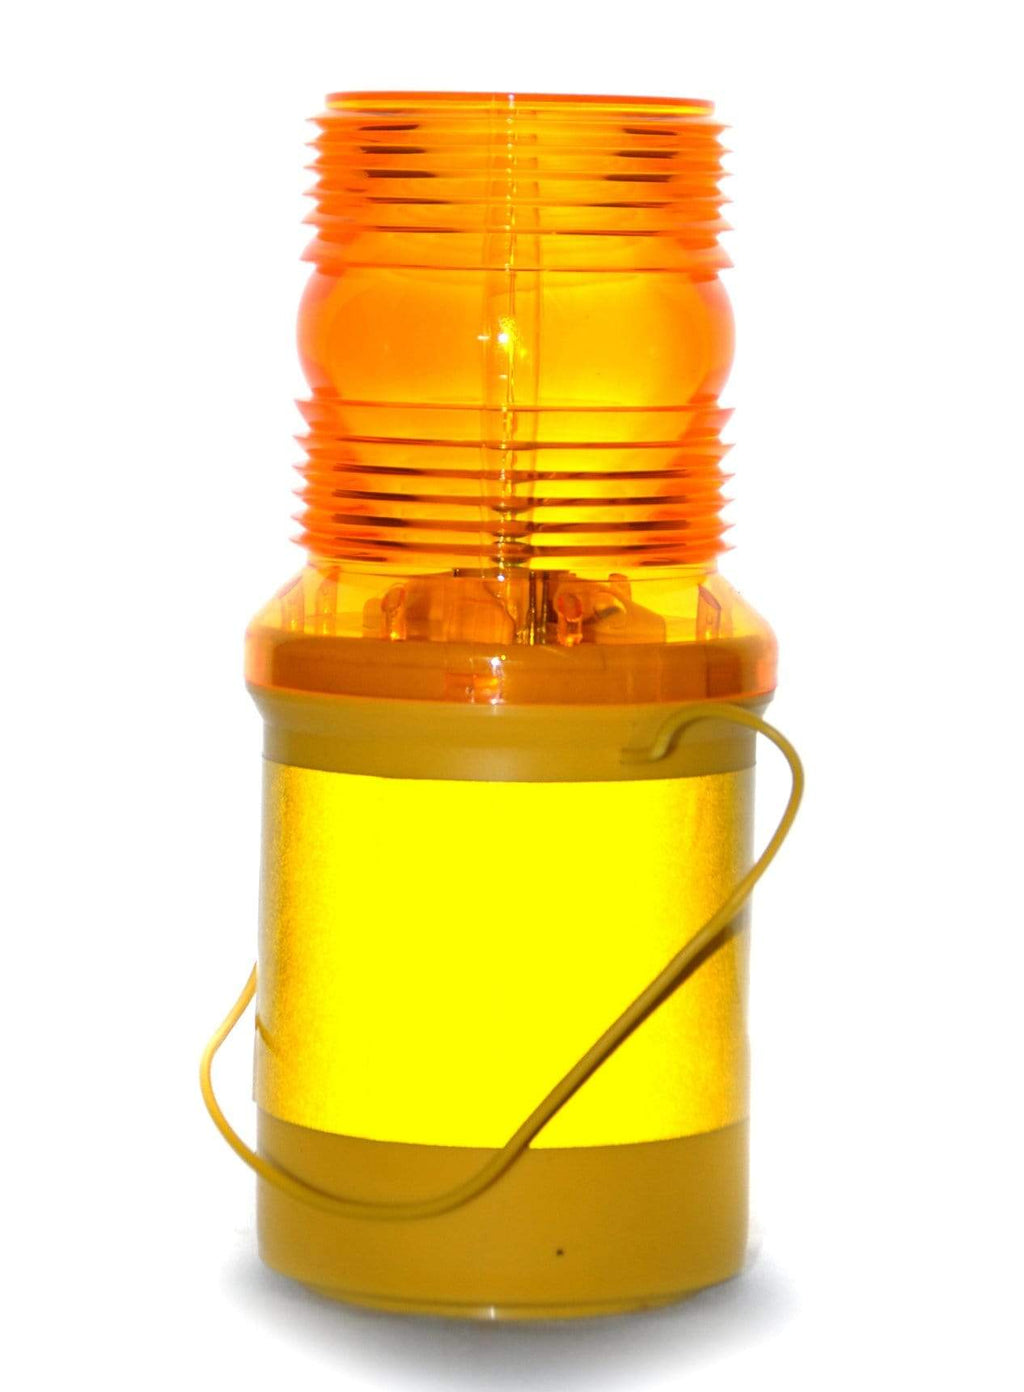 Ecolite - Amber flashing lamp - no photocell (4285964320802)